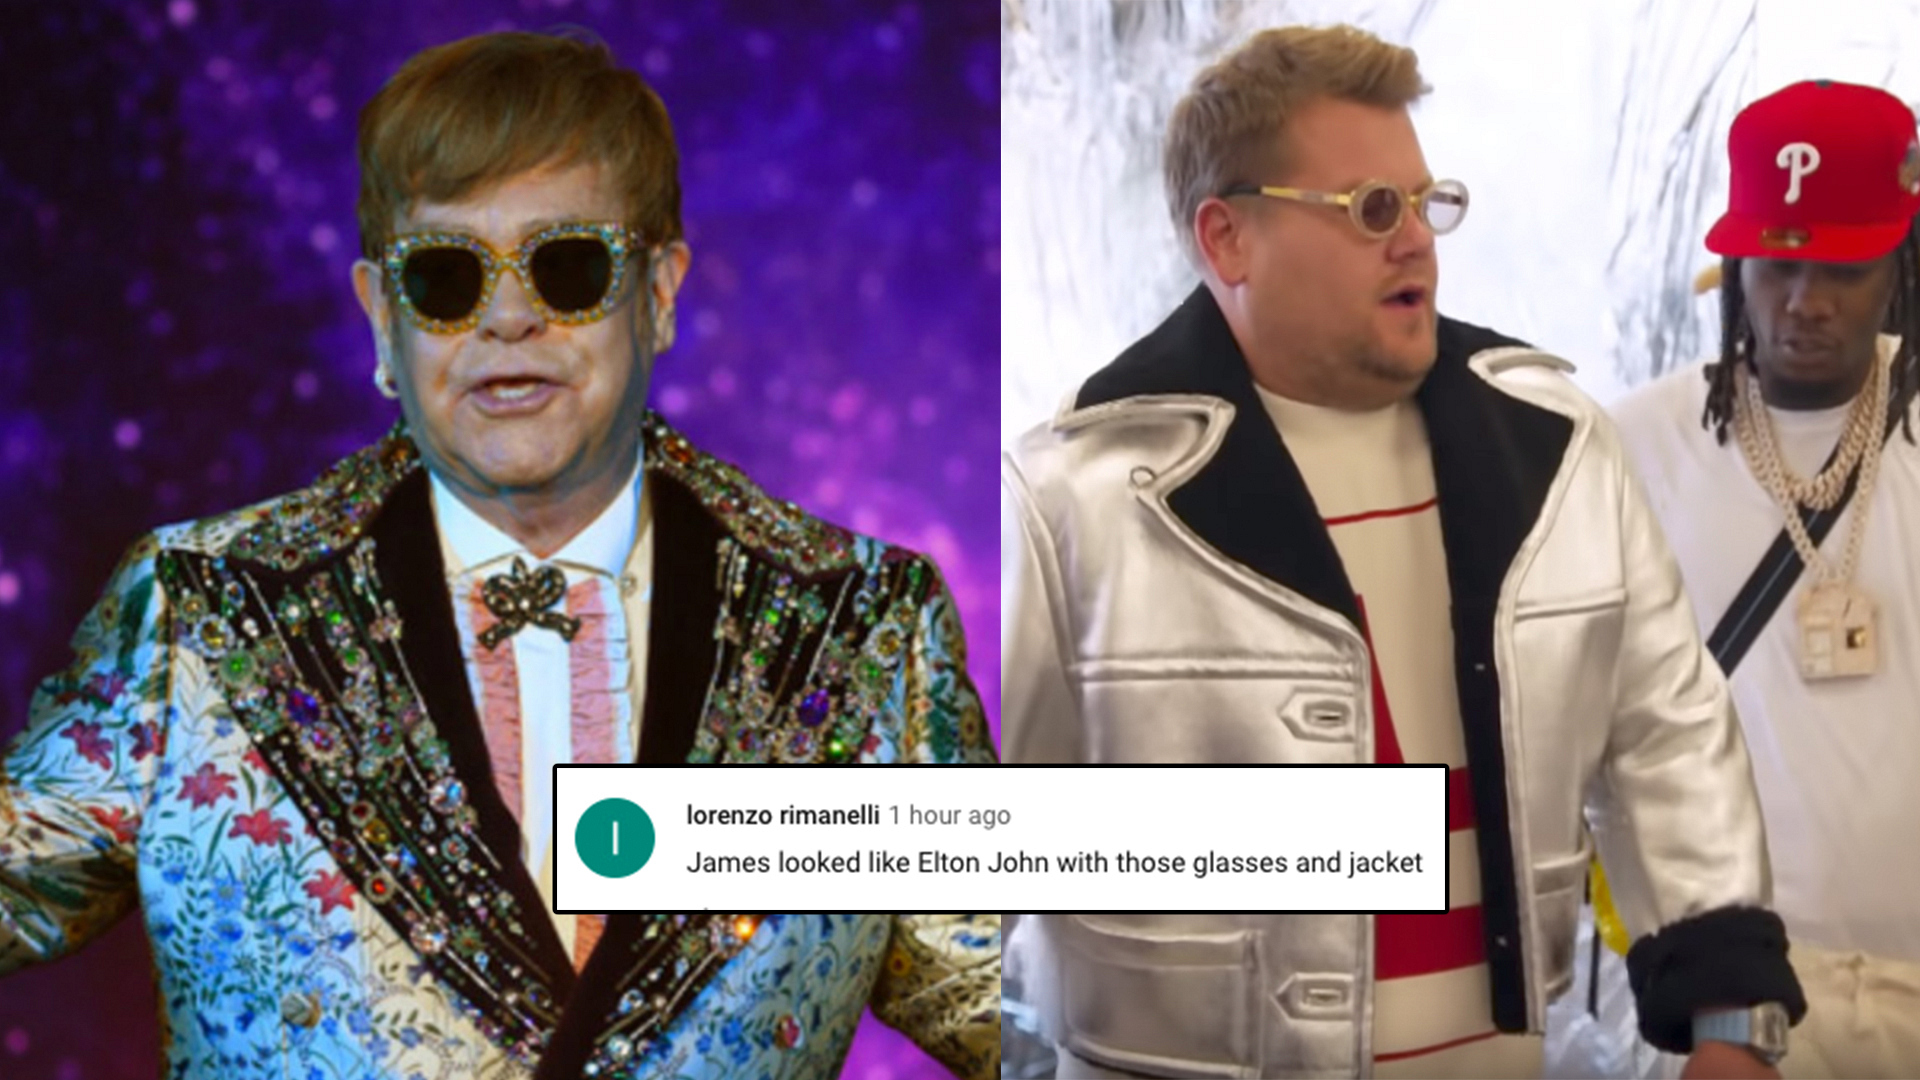 Are we sure Elton and James aren't related?